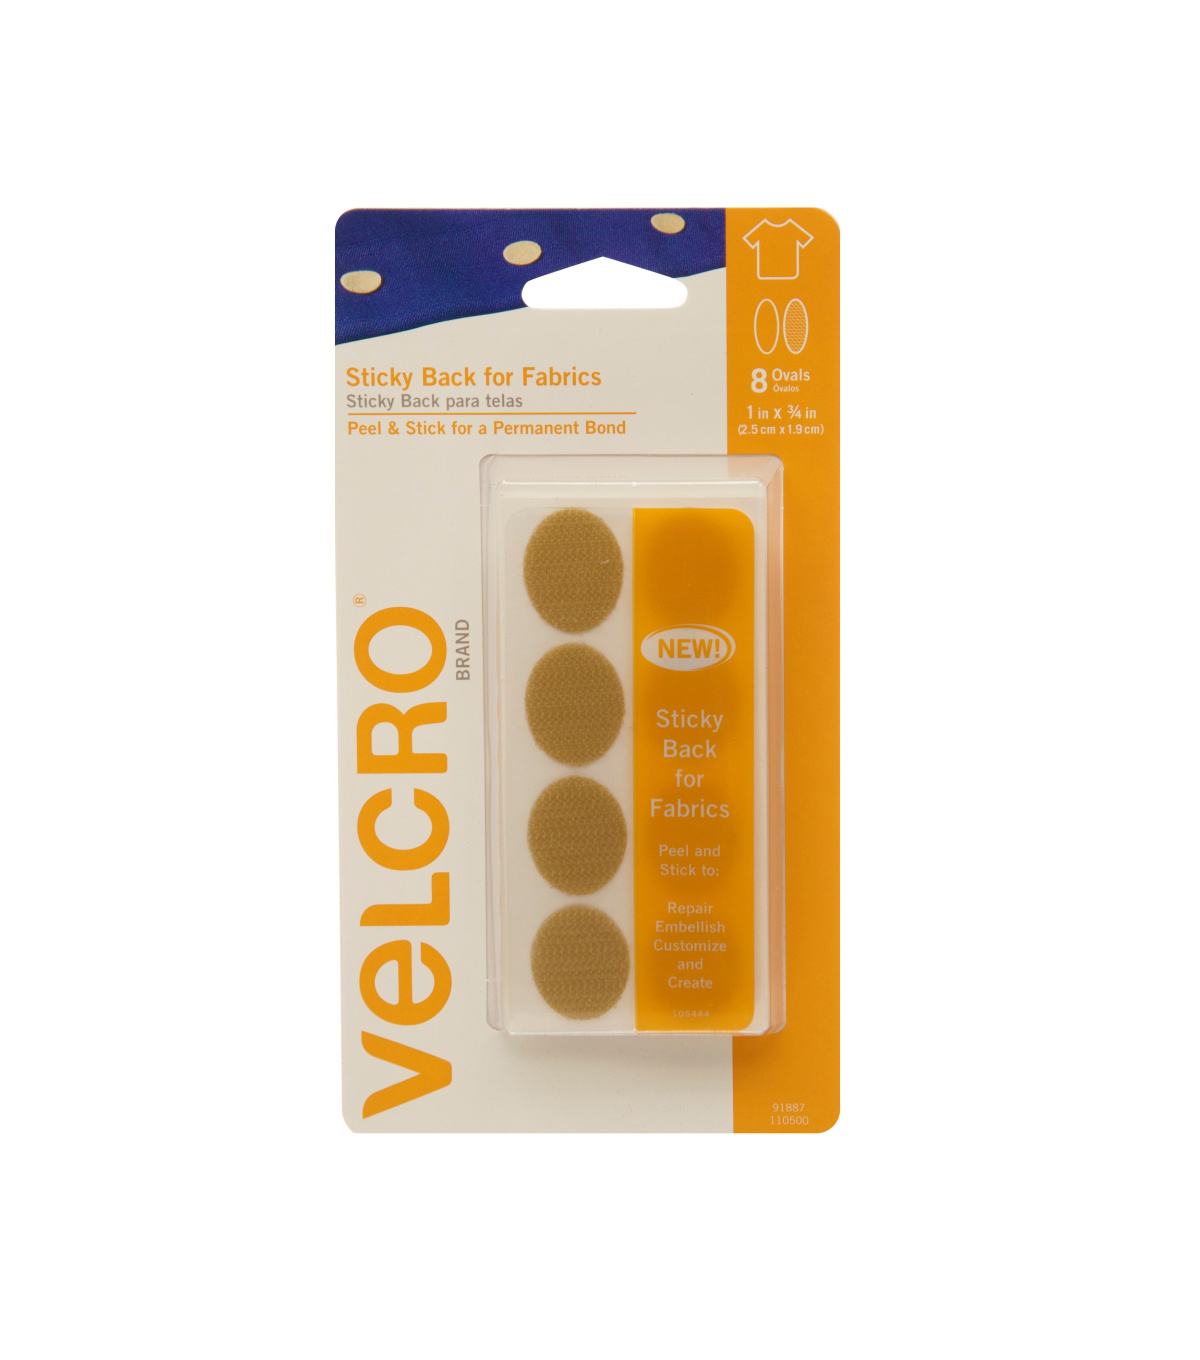 VELCRO Brand Sticky Back for Fabrics,1 in x 3/4 in ovals, beige, 8sets